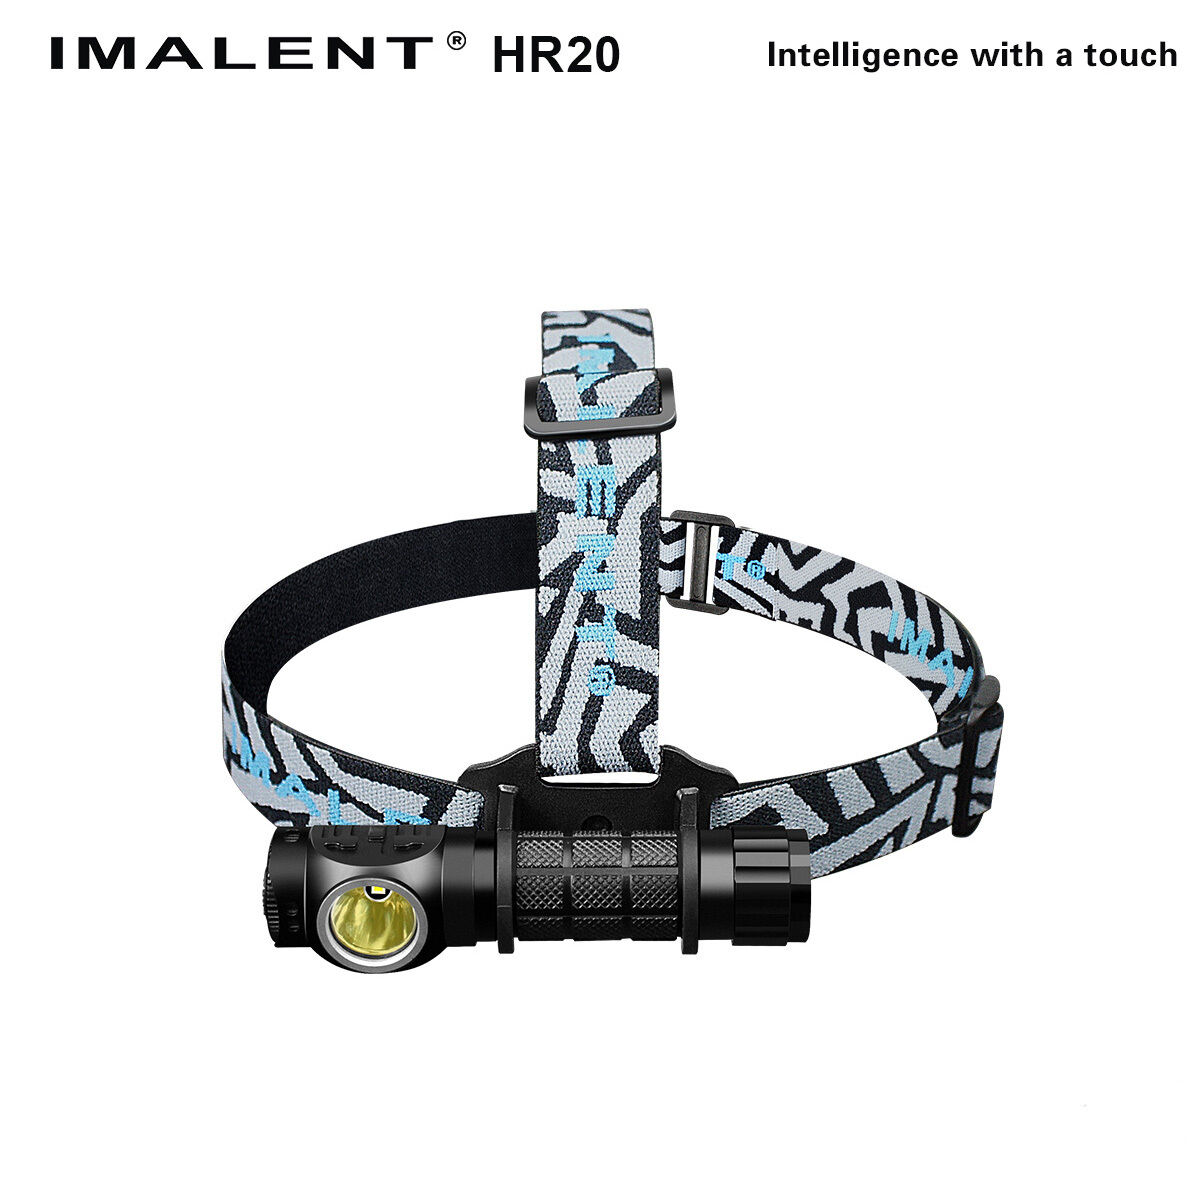 IMALENT  HR20 1000 Lumens cool white Headlight With USB Direct Charge battery  online shopping and fashion store